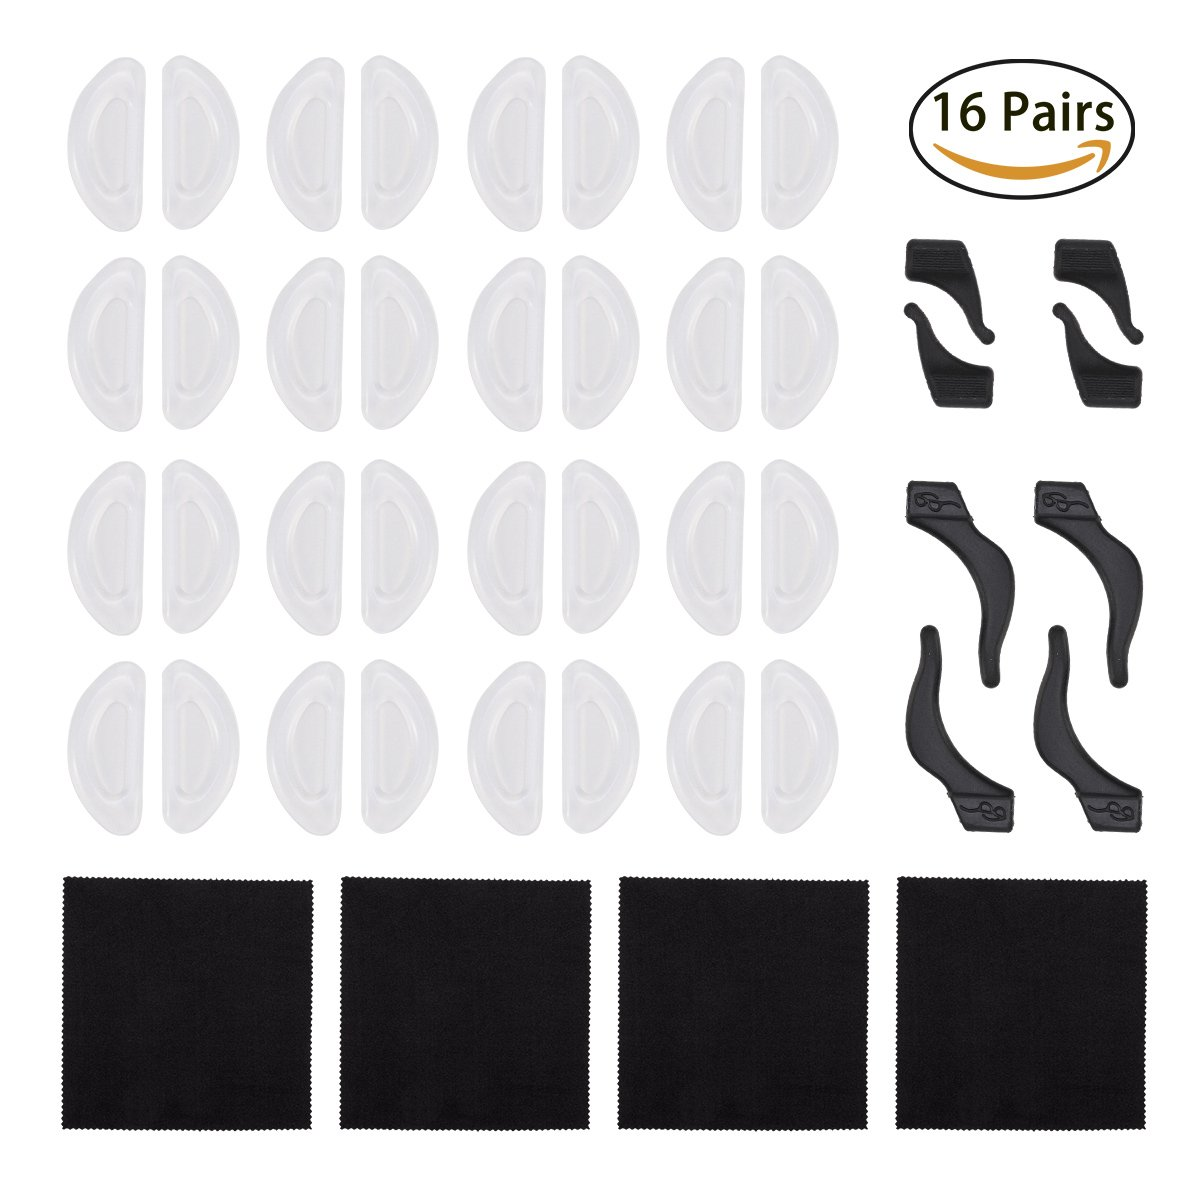 16 Pairs Small Clear Silicone Nose Pads Adhesive Glasses with 4 Pairs Black Eyewear Retainers Anti-slip Holder Silicone Ear Grip Hook for Eyeglasses